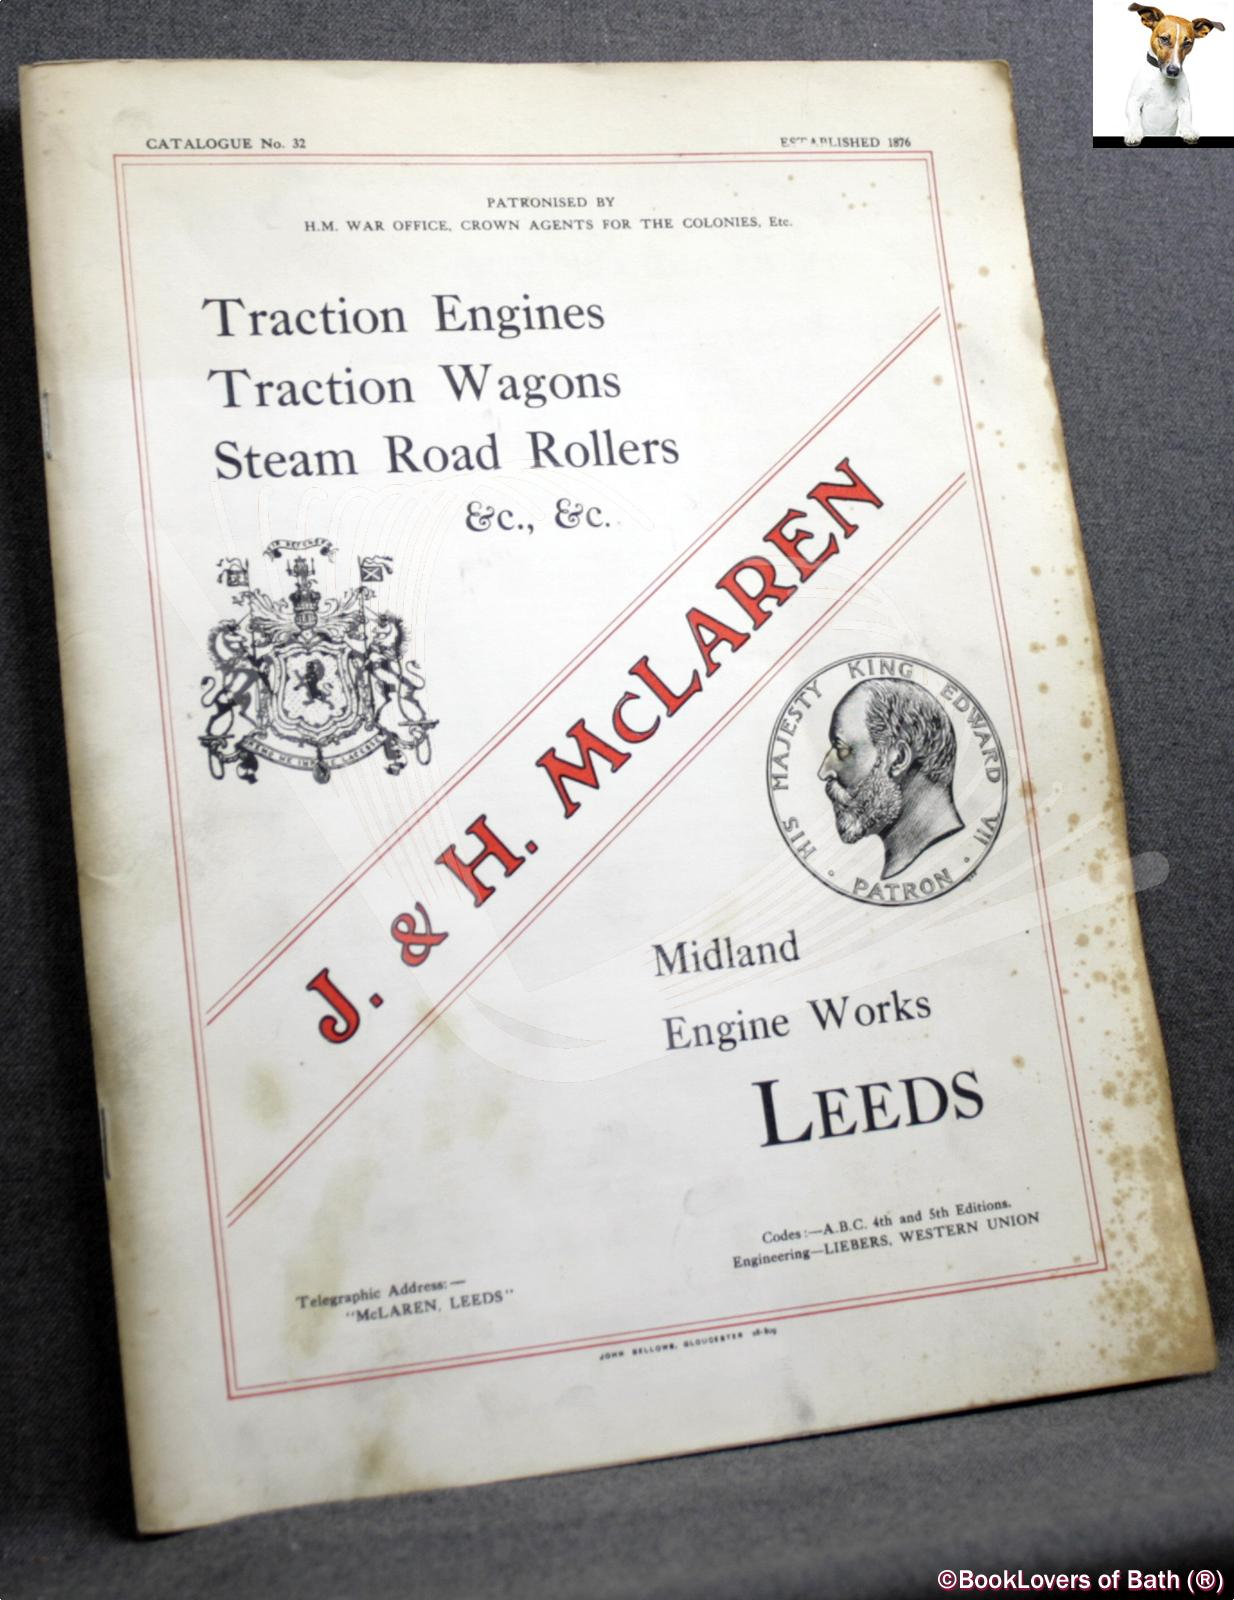 Catalogue of Traction Engines Royal Gold Medal Steam Tractors Steam Road Rollers, Etc. Manufactured by J. & H. McLaren, Midland Engine Works, Leeds - Anon